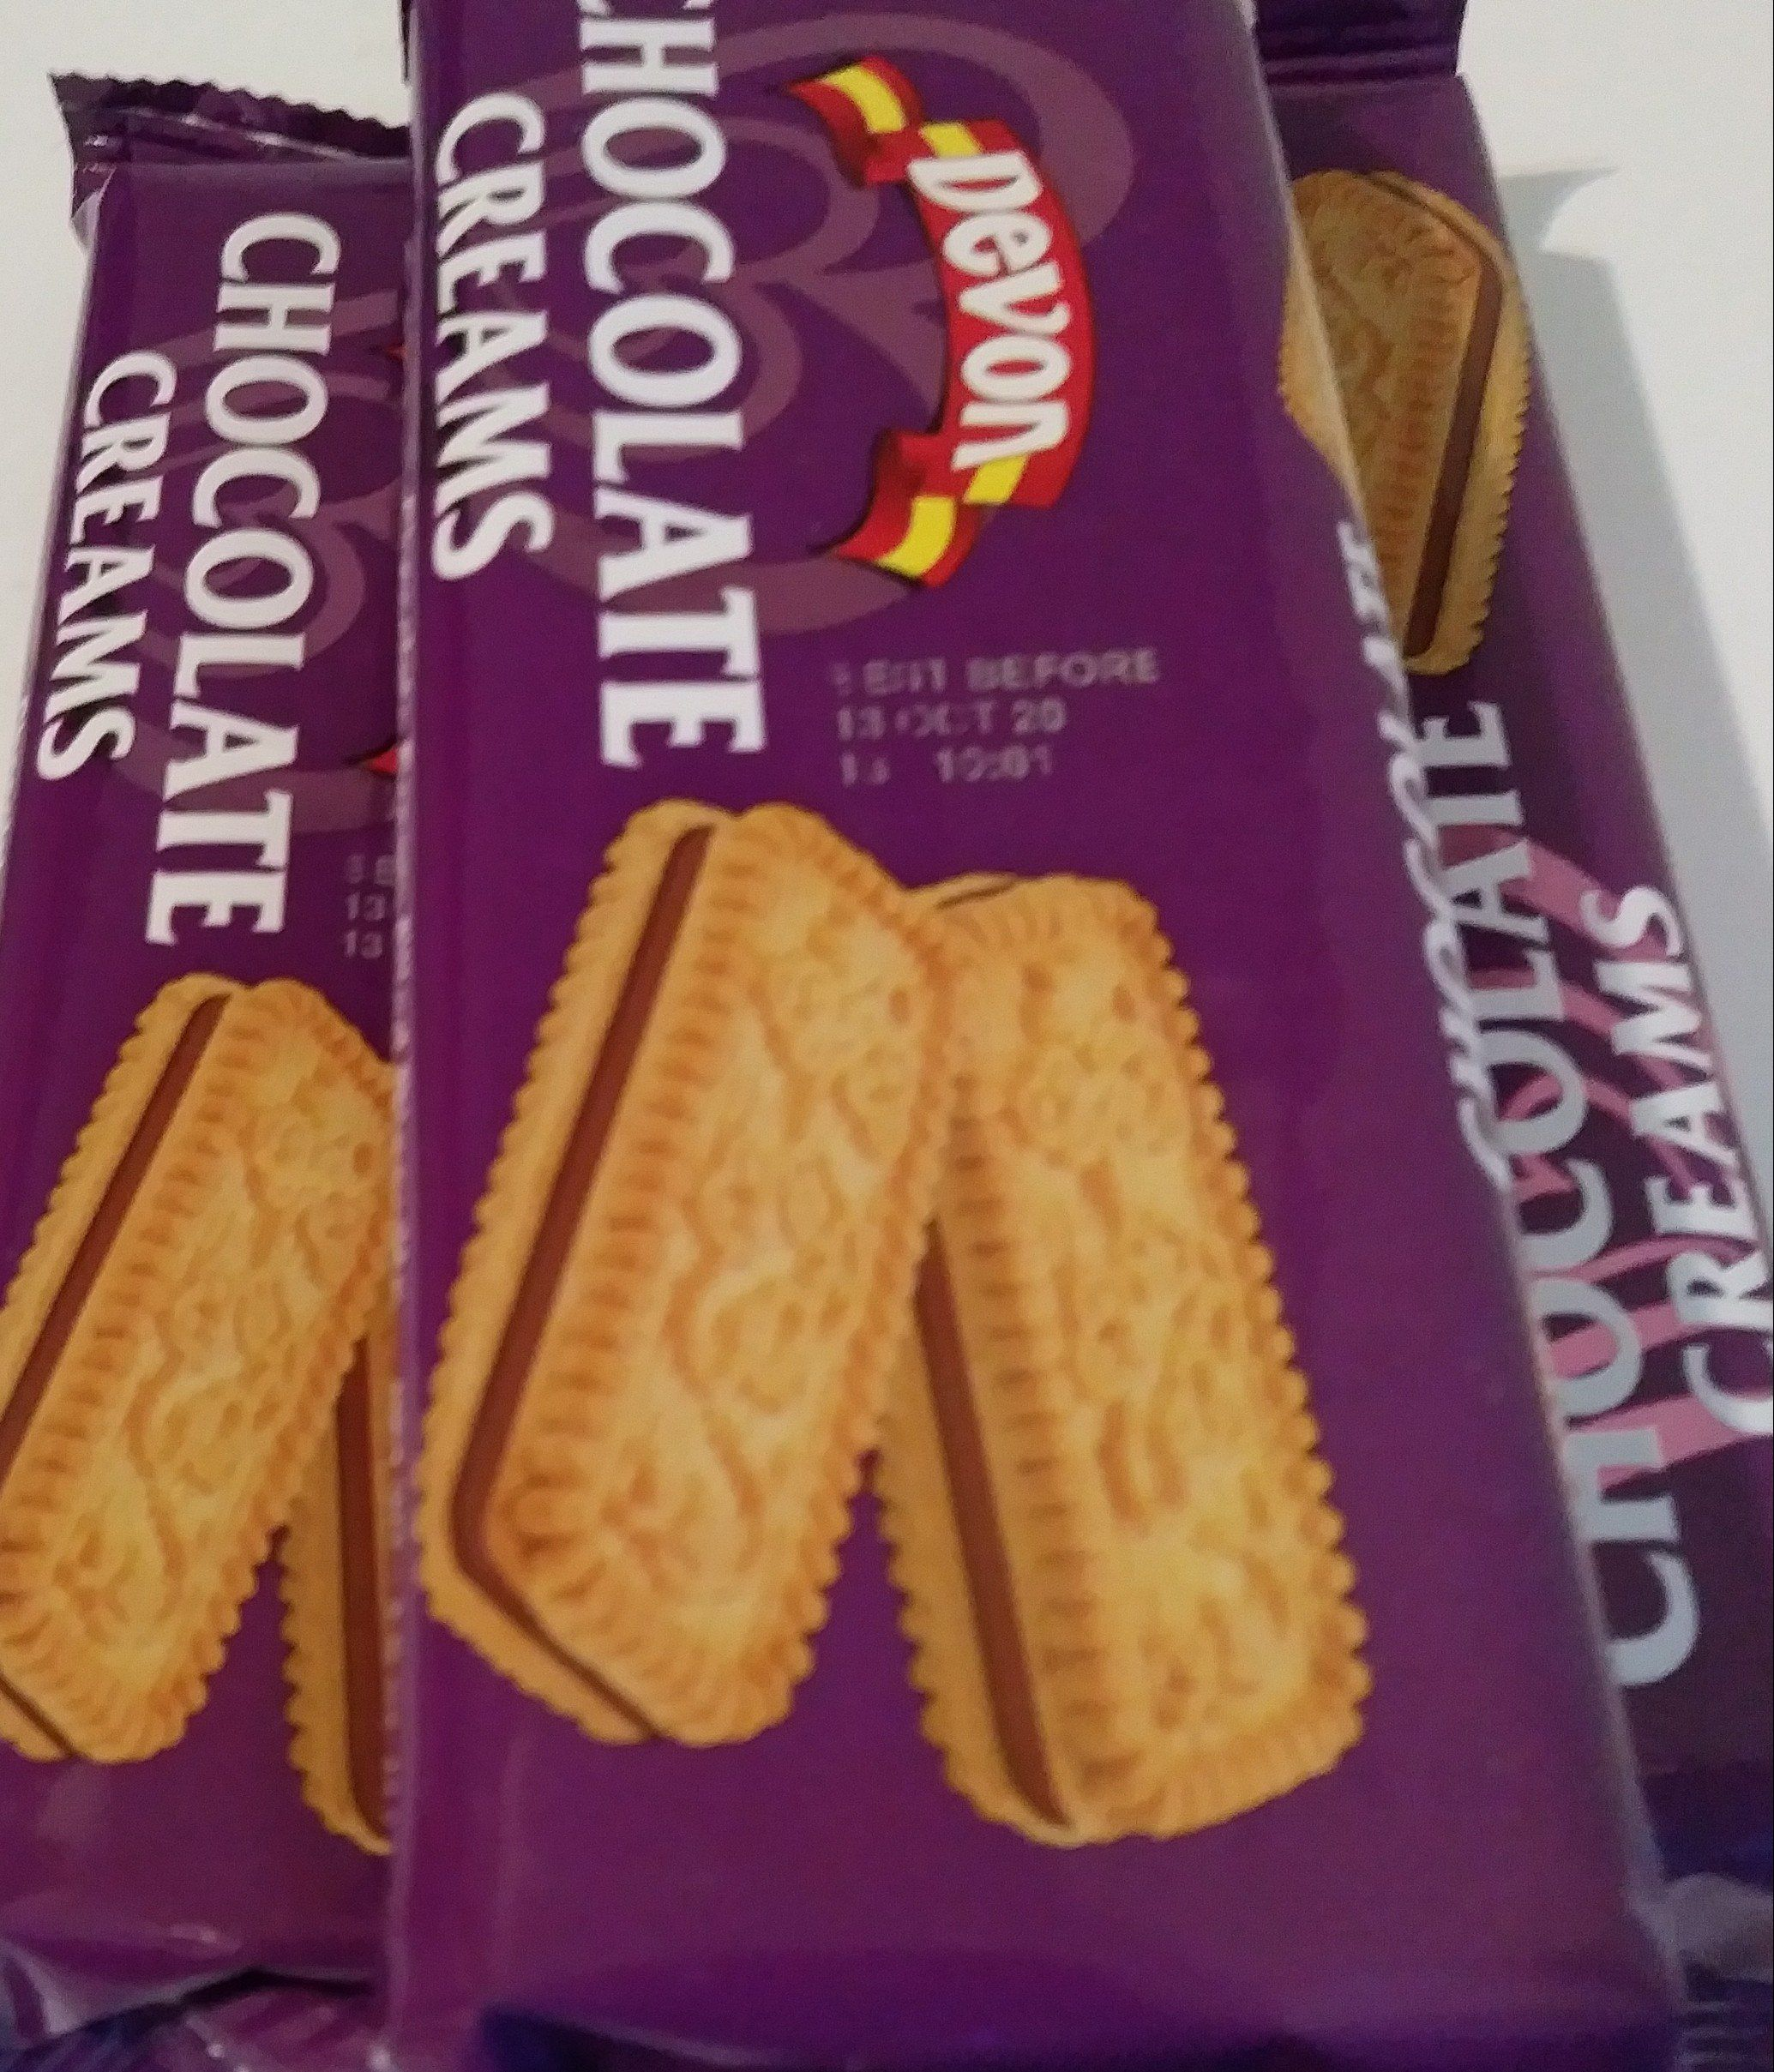 Chocolate filled biscuits